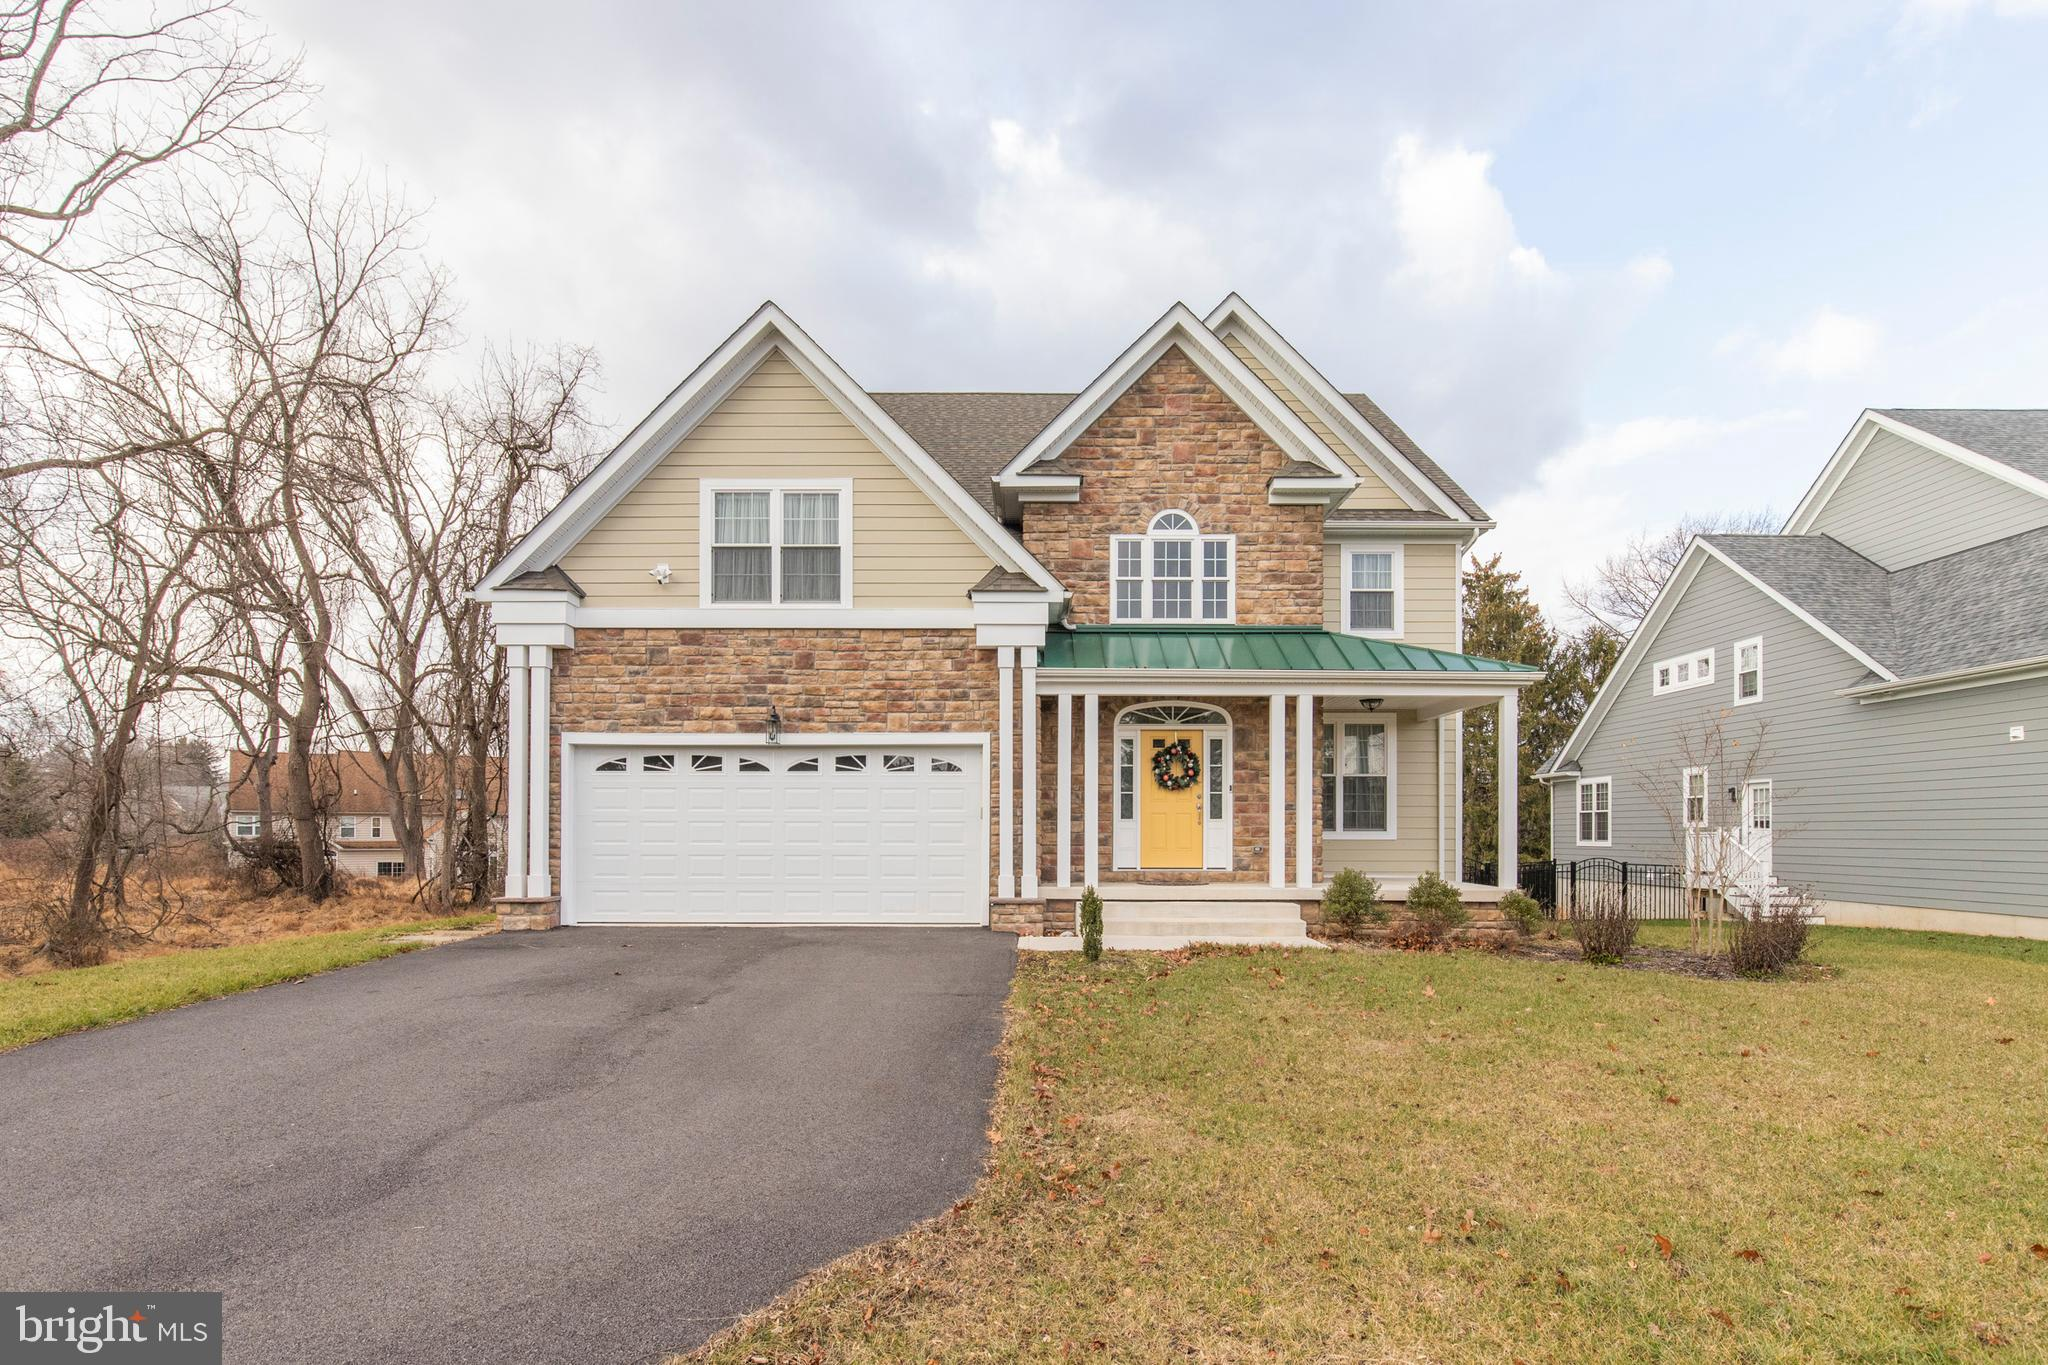 101 FOX HOLLOW LANE, BROOMALL, PA 19008